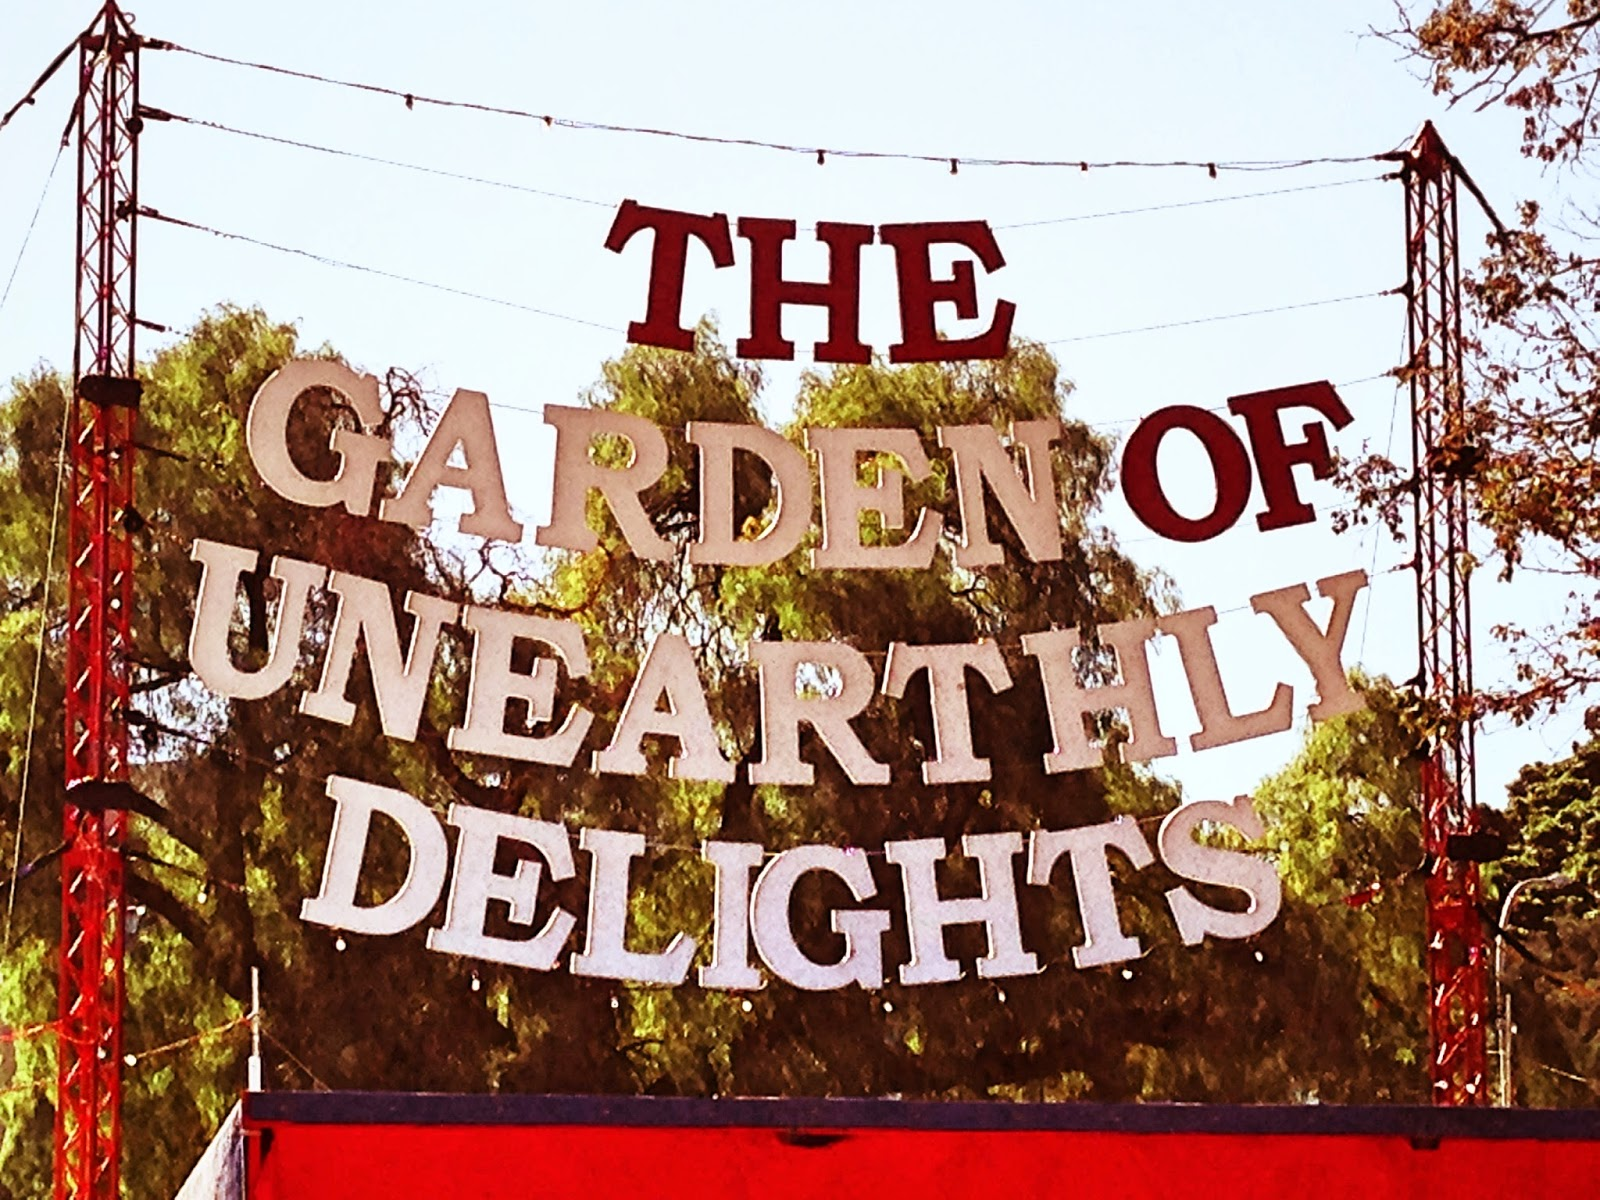 Adelaide: The Garden of Unearthly Delights